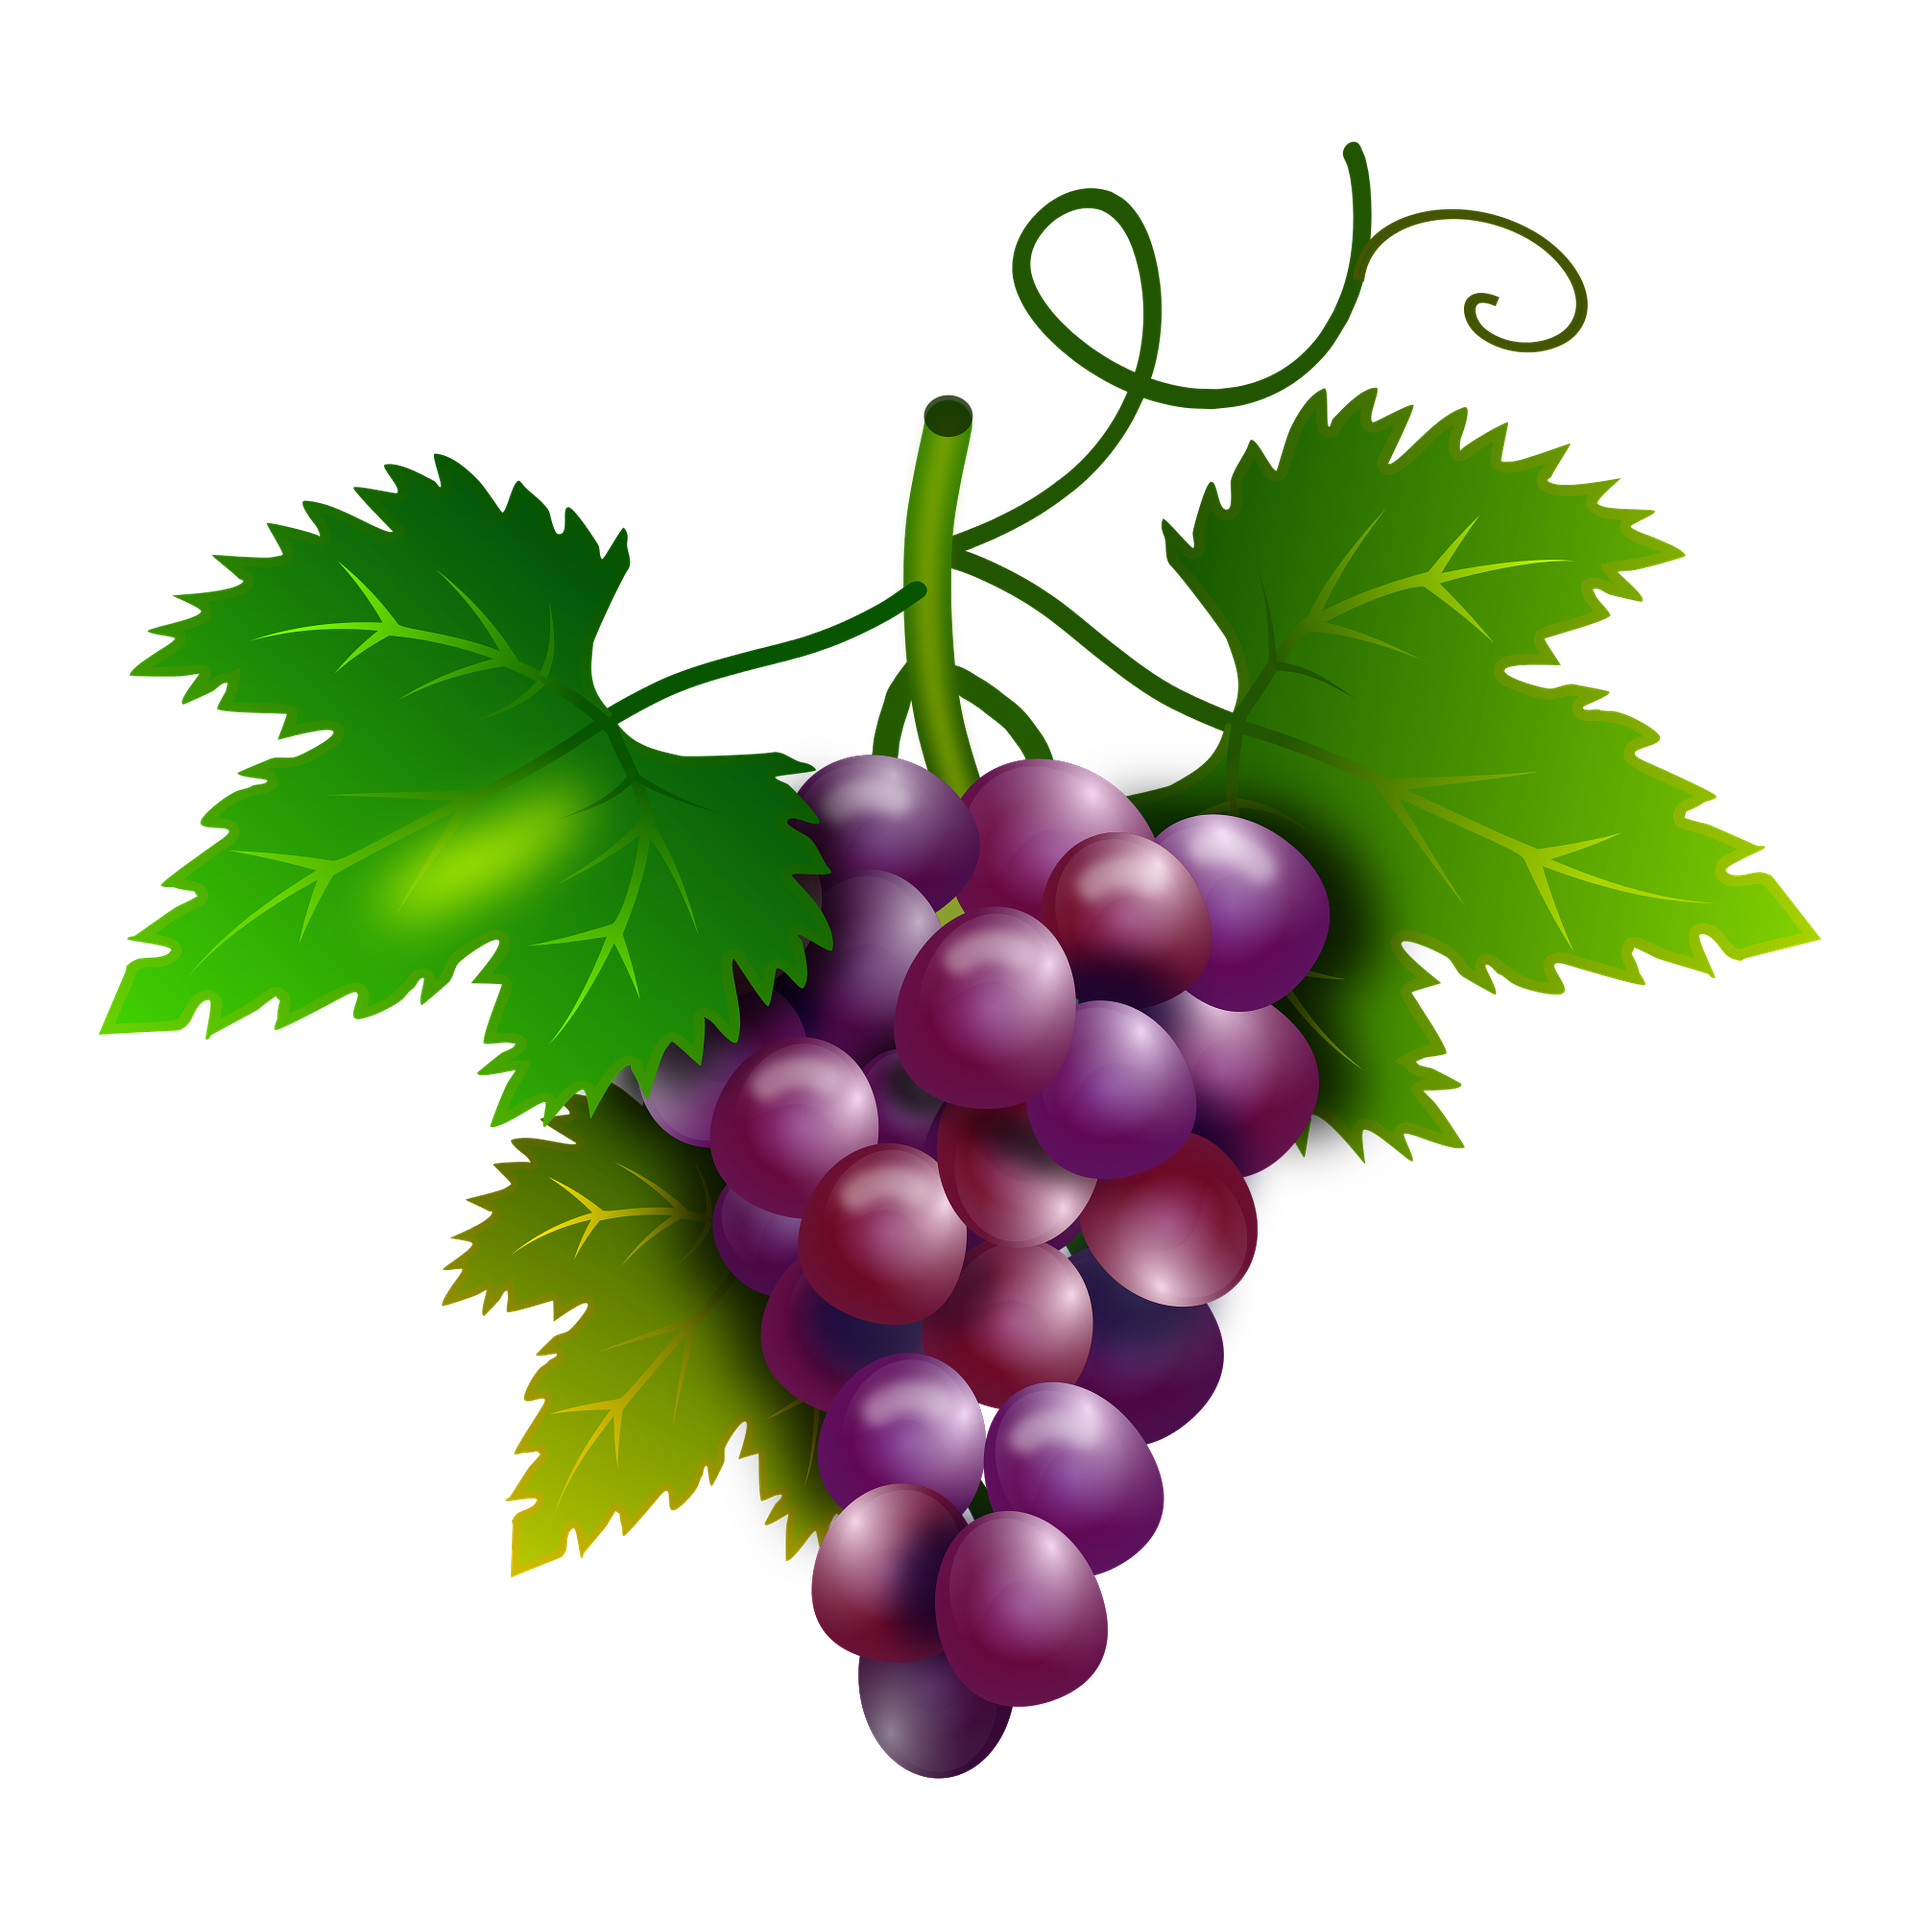 banner transparent download Grapes free on dumielauxepices. Grapevine clipart purple food